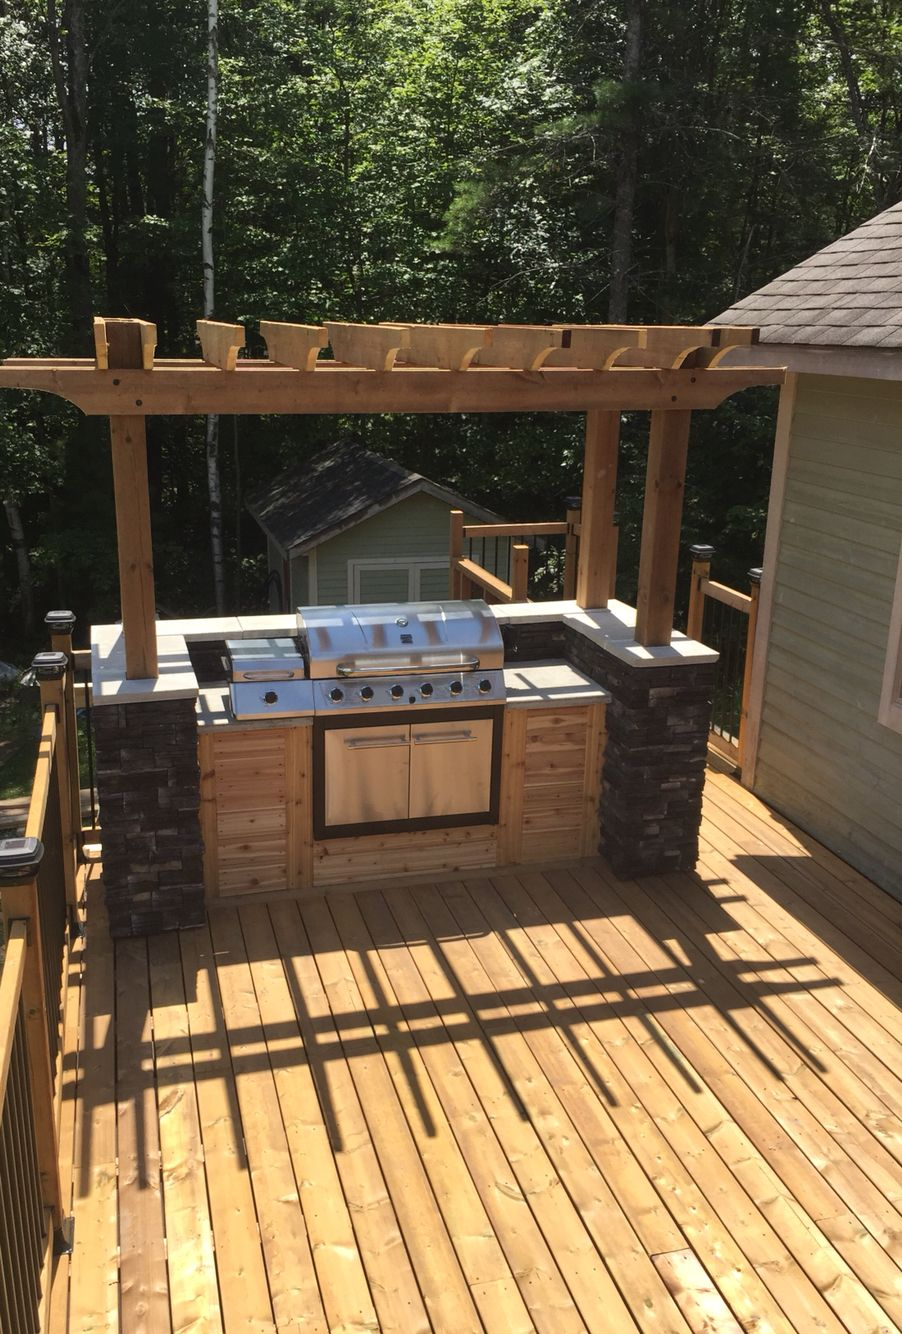 Outdoor bbq island built on my parents deck in muskoka